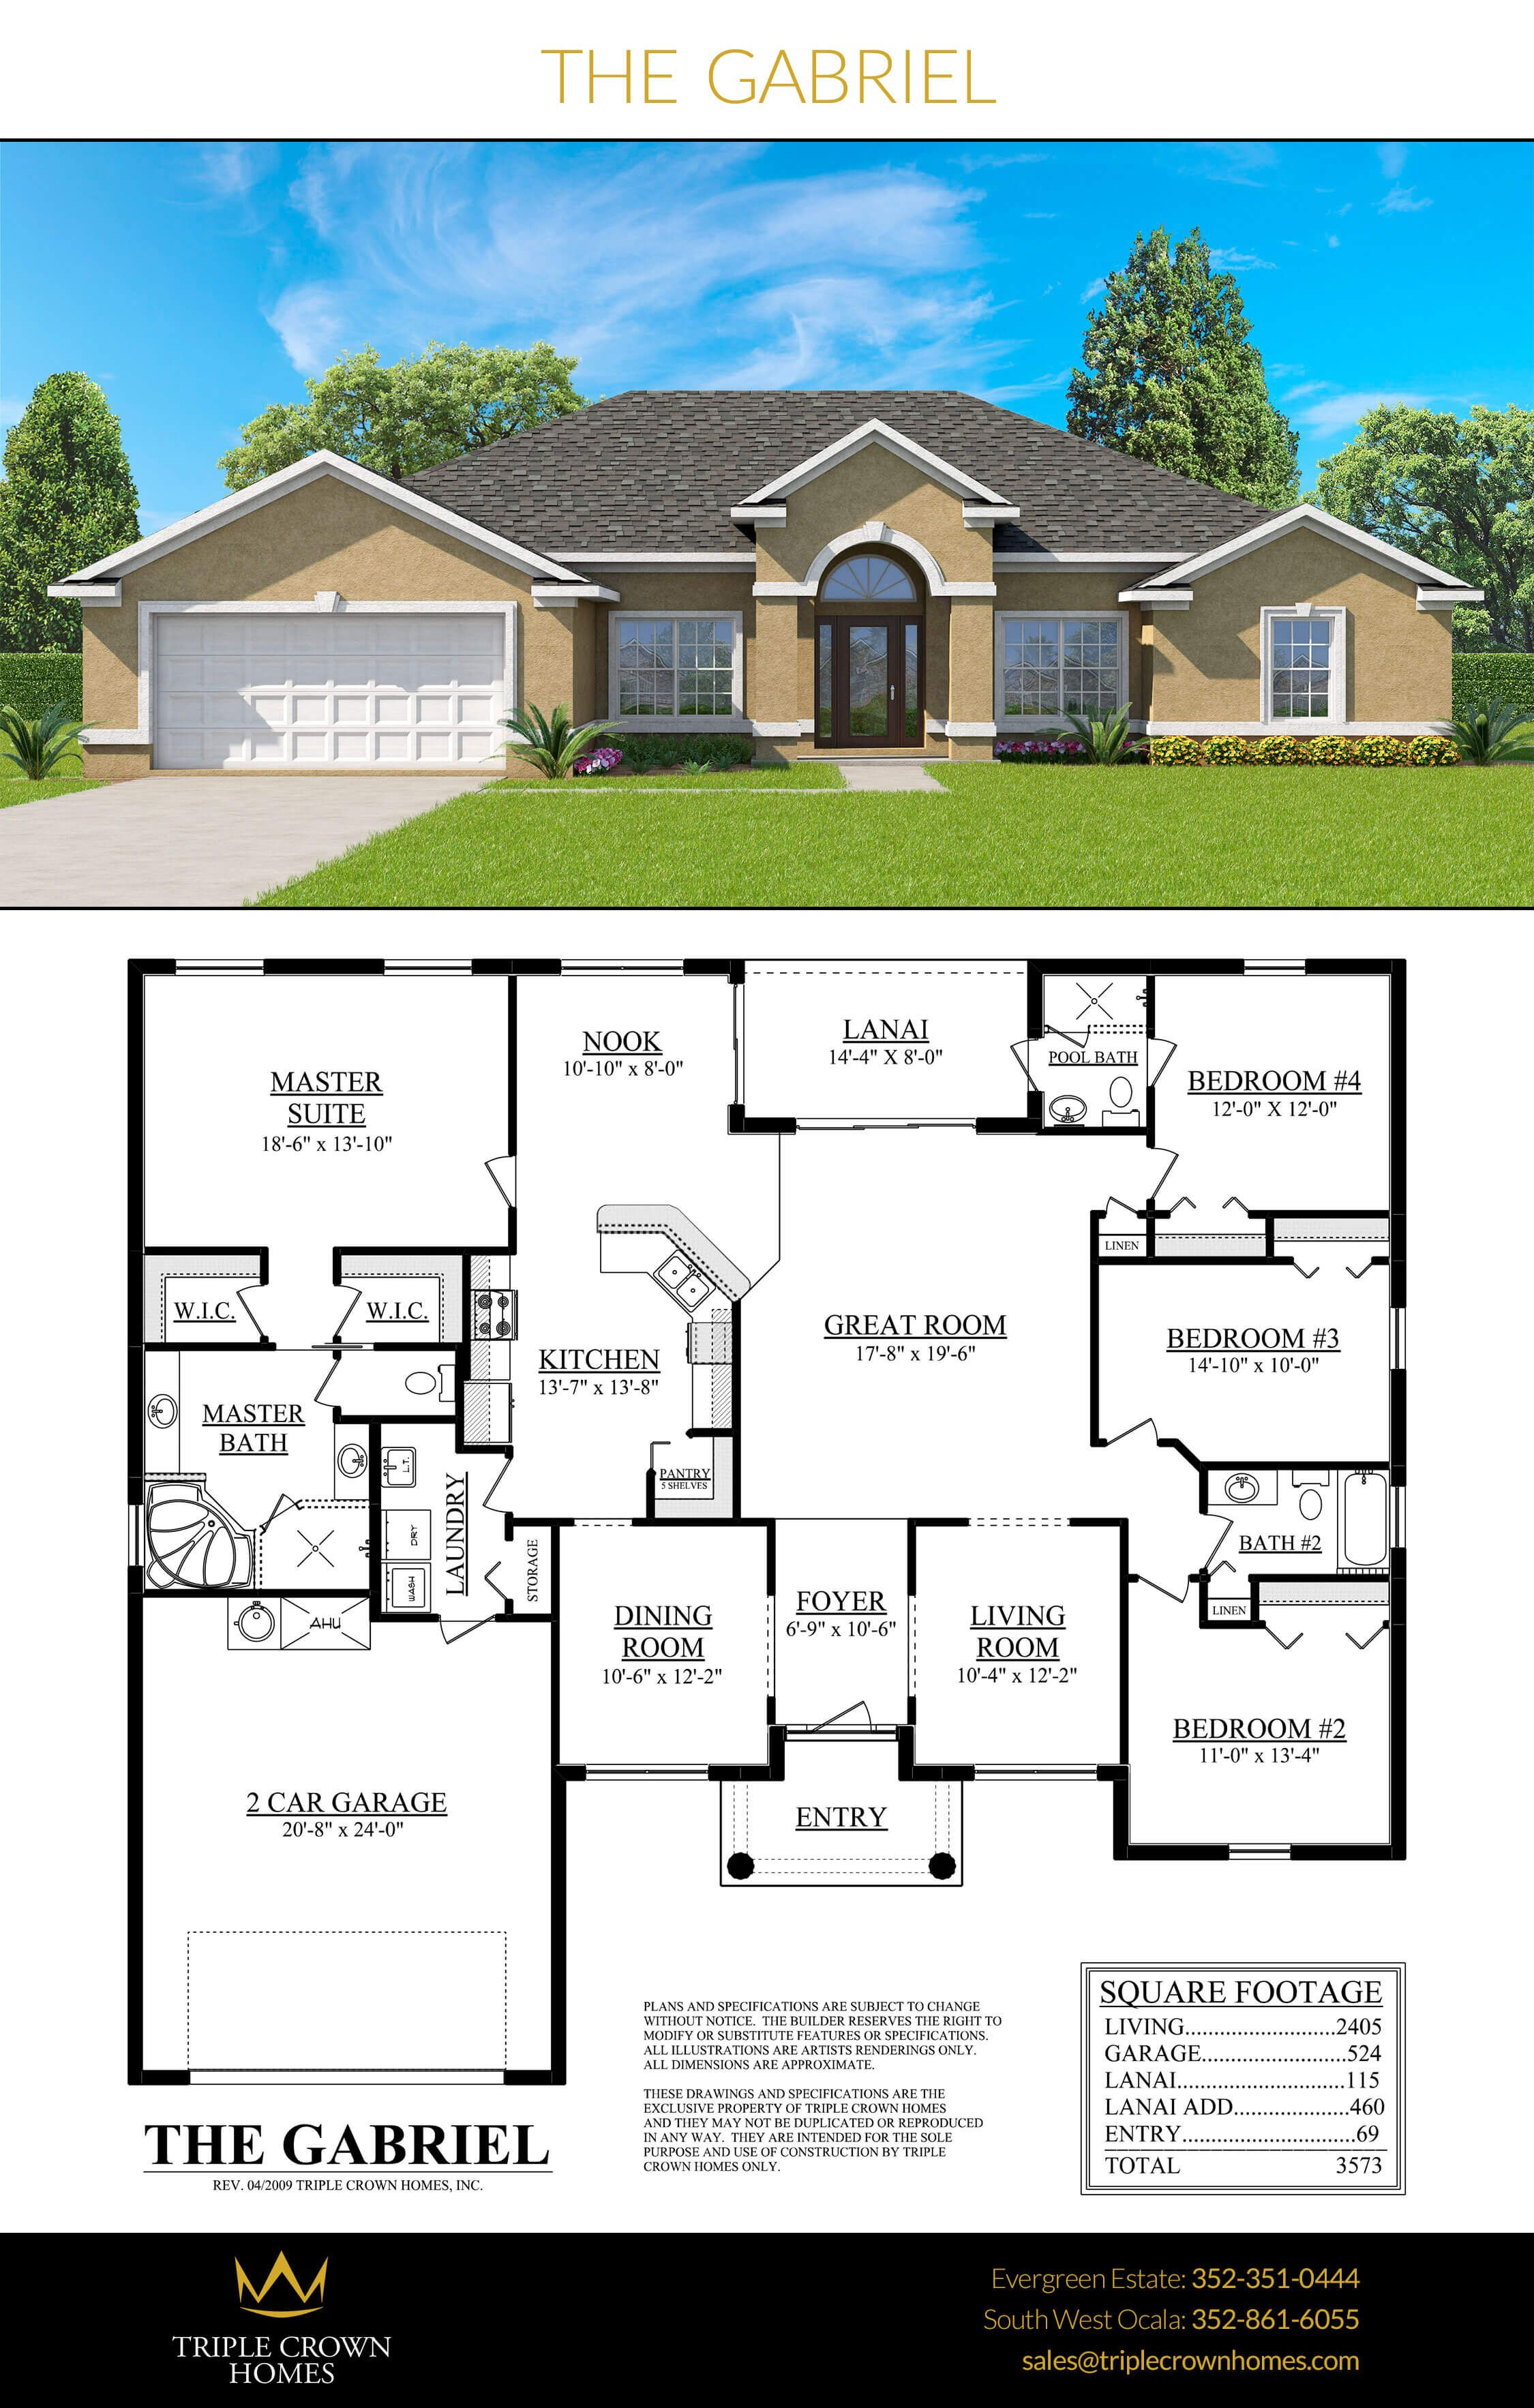 Absolutely Love This House Florida House Plans Home Design Floor Plans My House Plans